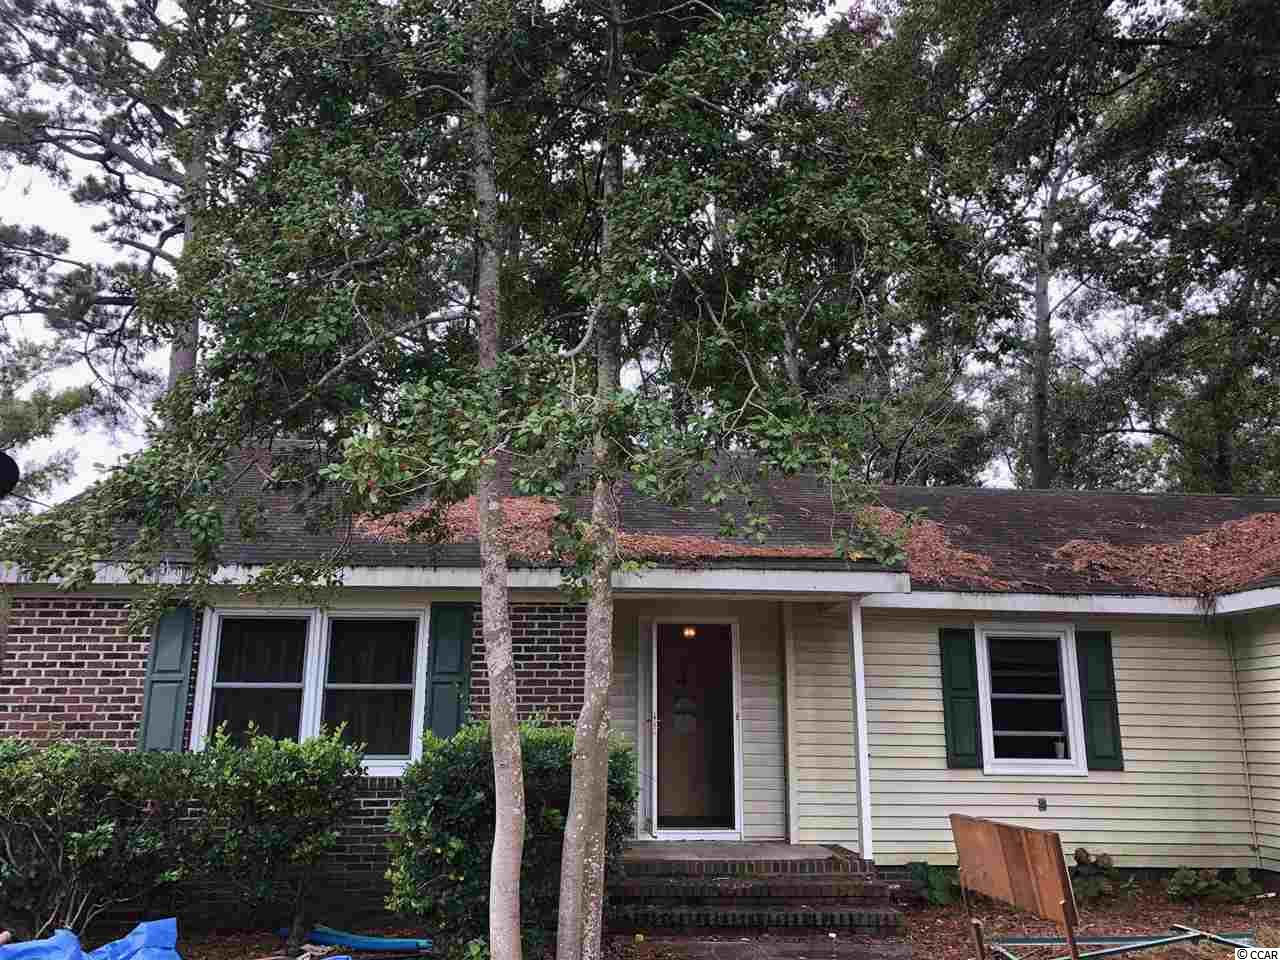 Calling all investors! This home is in need of a makeover, but is in an incredible location just a short walk or drive to the beach! This ranch style brick home is located east of 17 in the popular Surfside Beach area. Great potential for a flip or long term rental.